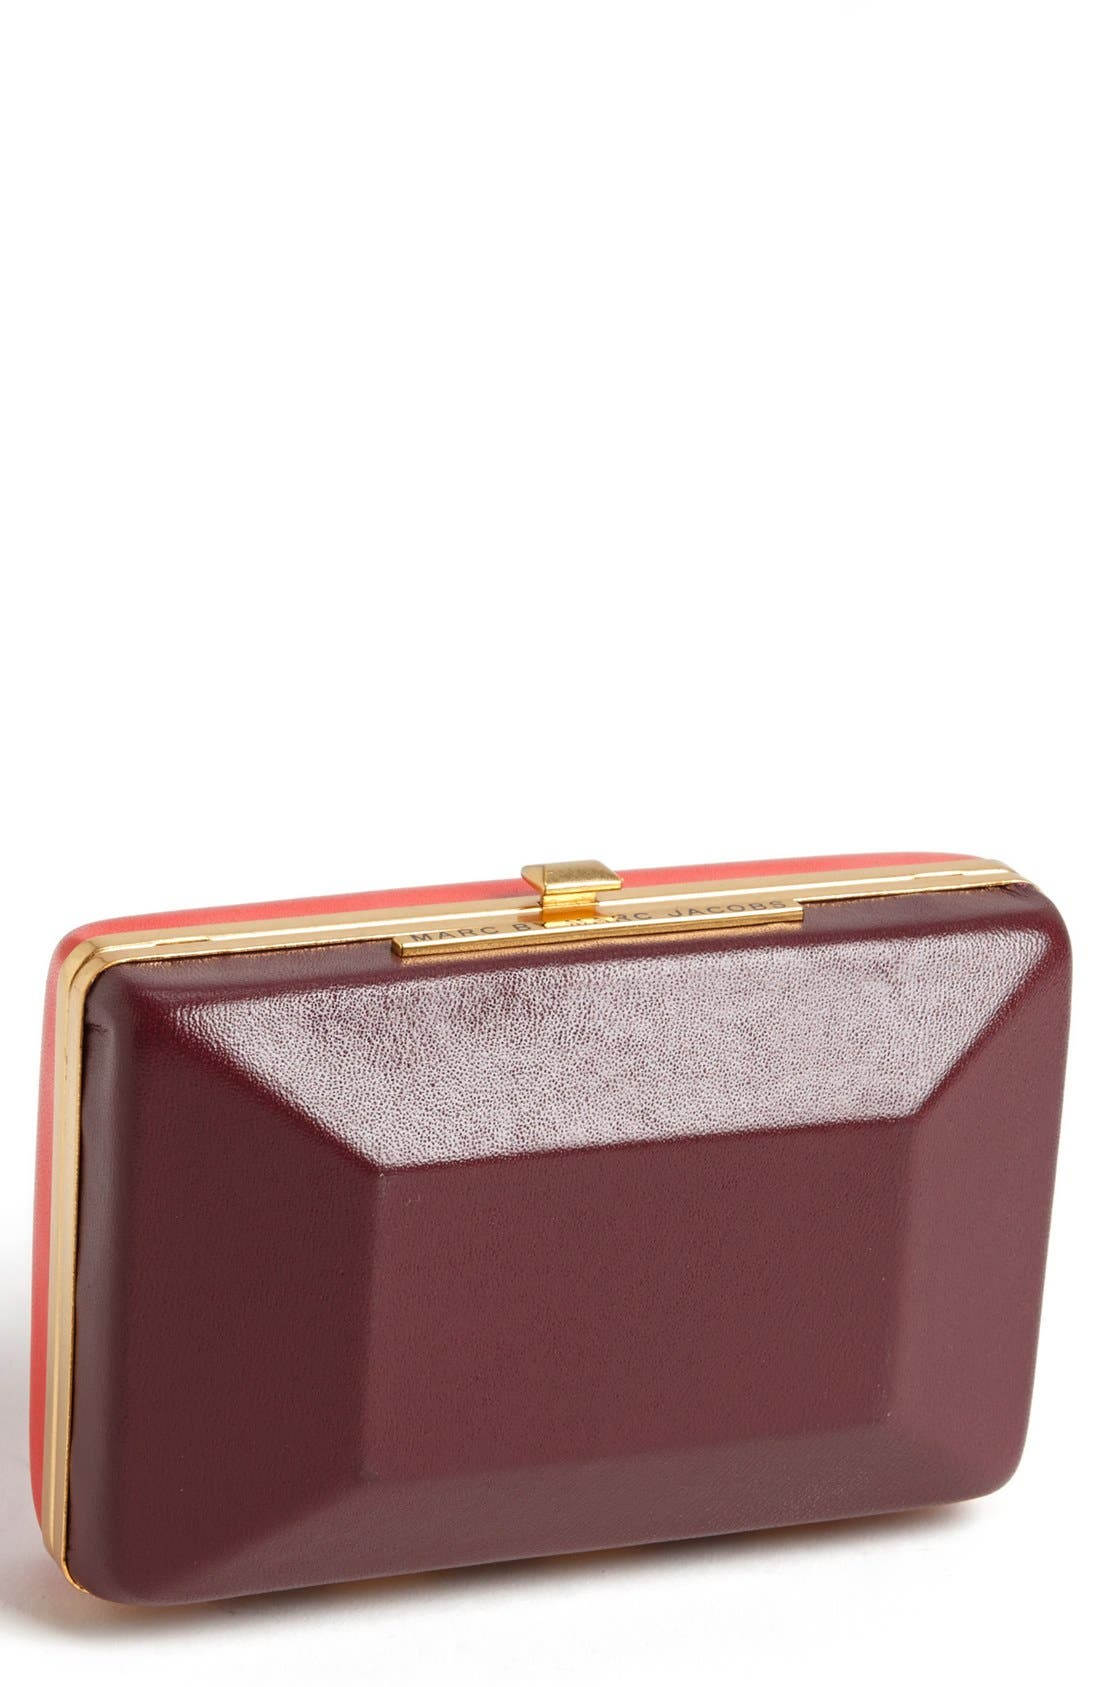 Main Image - MARC BY MARC JACOBS 'Box It Up' Colorblock Leather Clutch